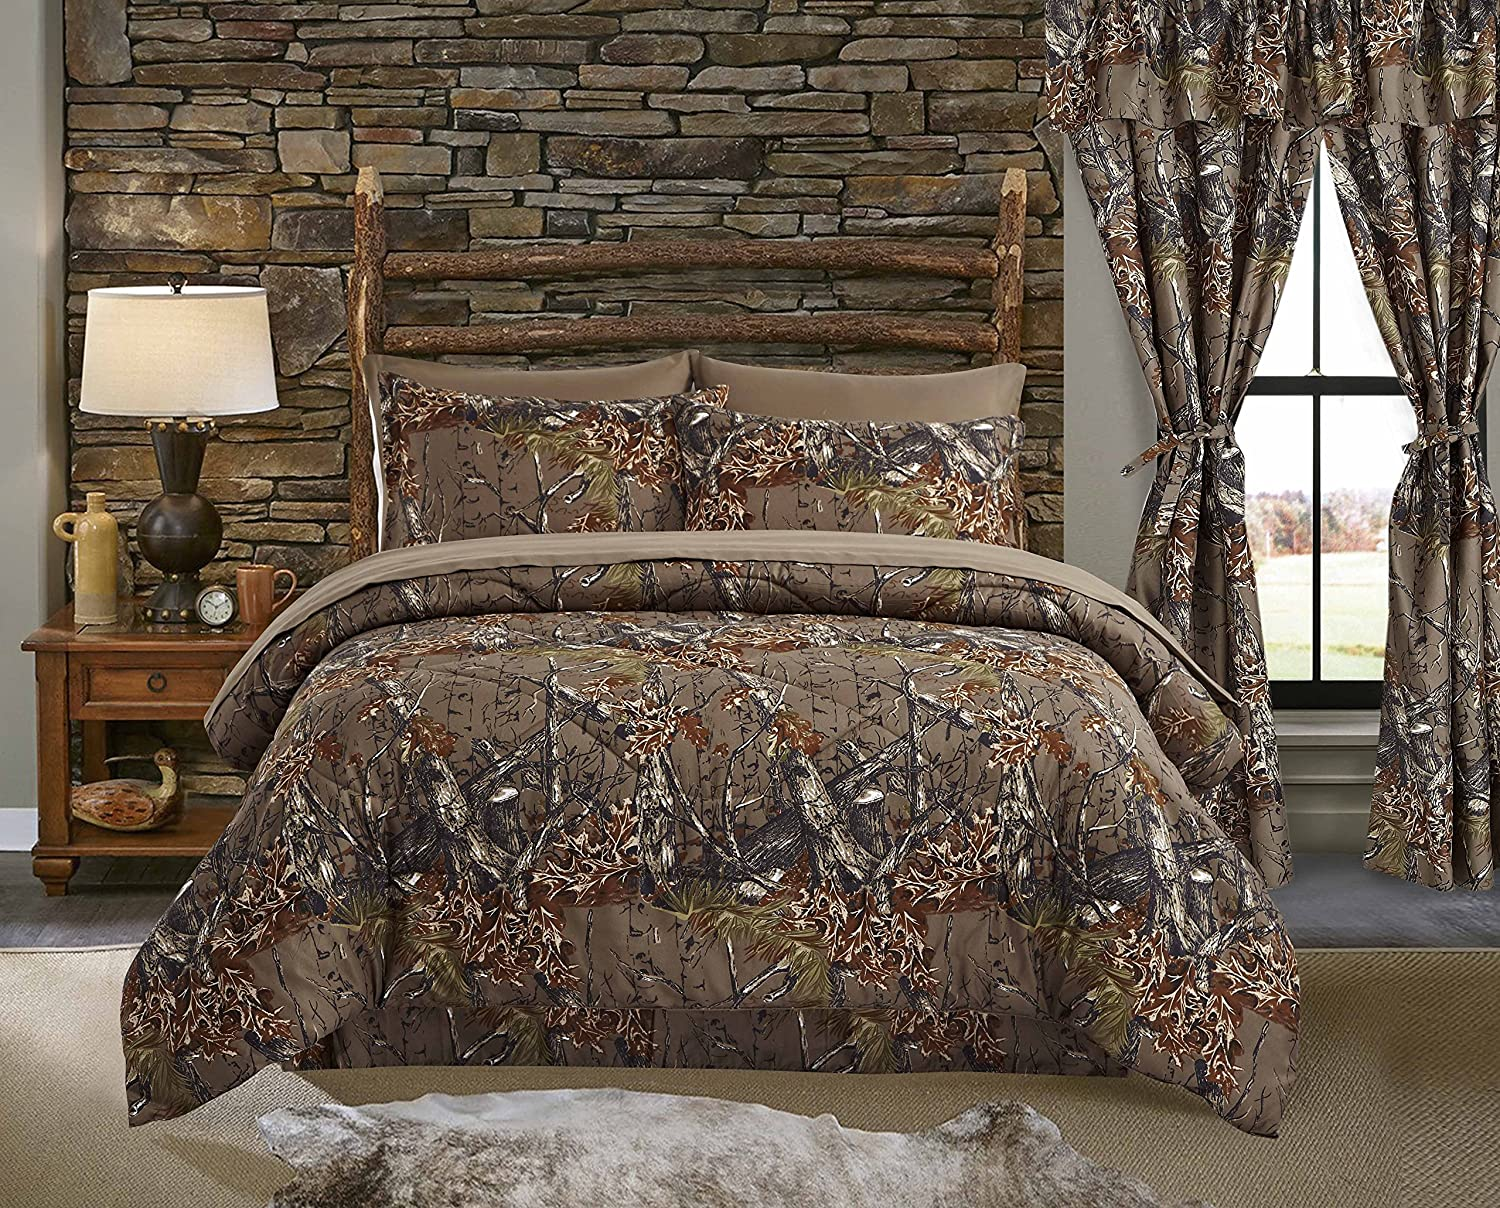 Regal Comfort The Woods Natural Green Camouflage King 4 Piece Premium Luxury Comforter, Bed Skirt, and 2 Pillow Shams Set - Camo Bedding Set for Hunters Cabin or Rustic Lodge Teens Boys and Girls